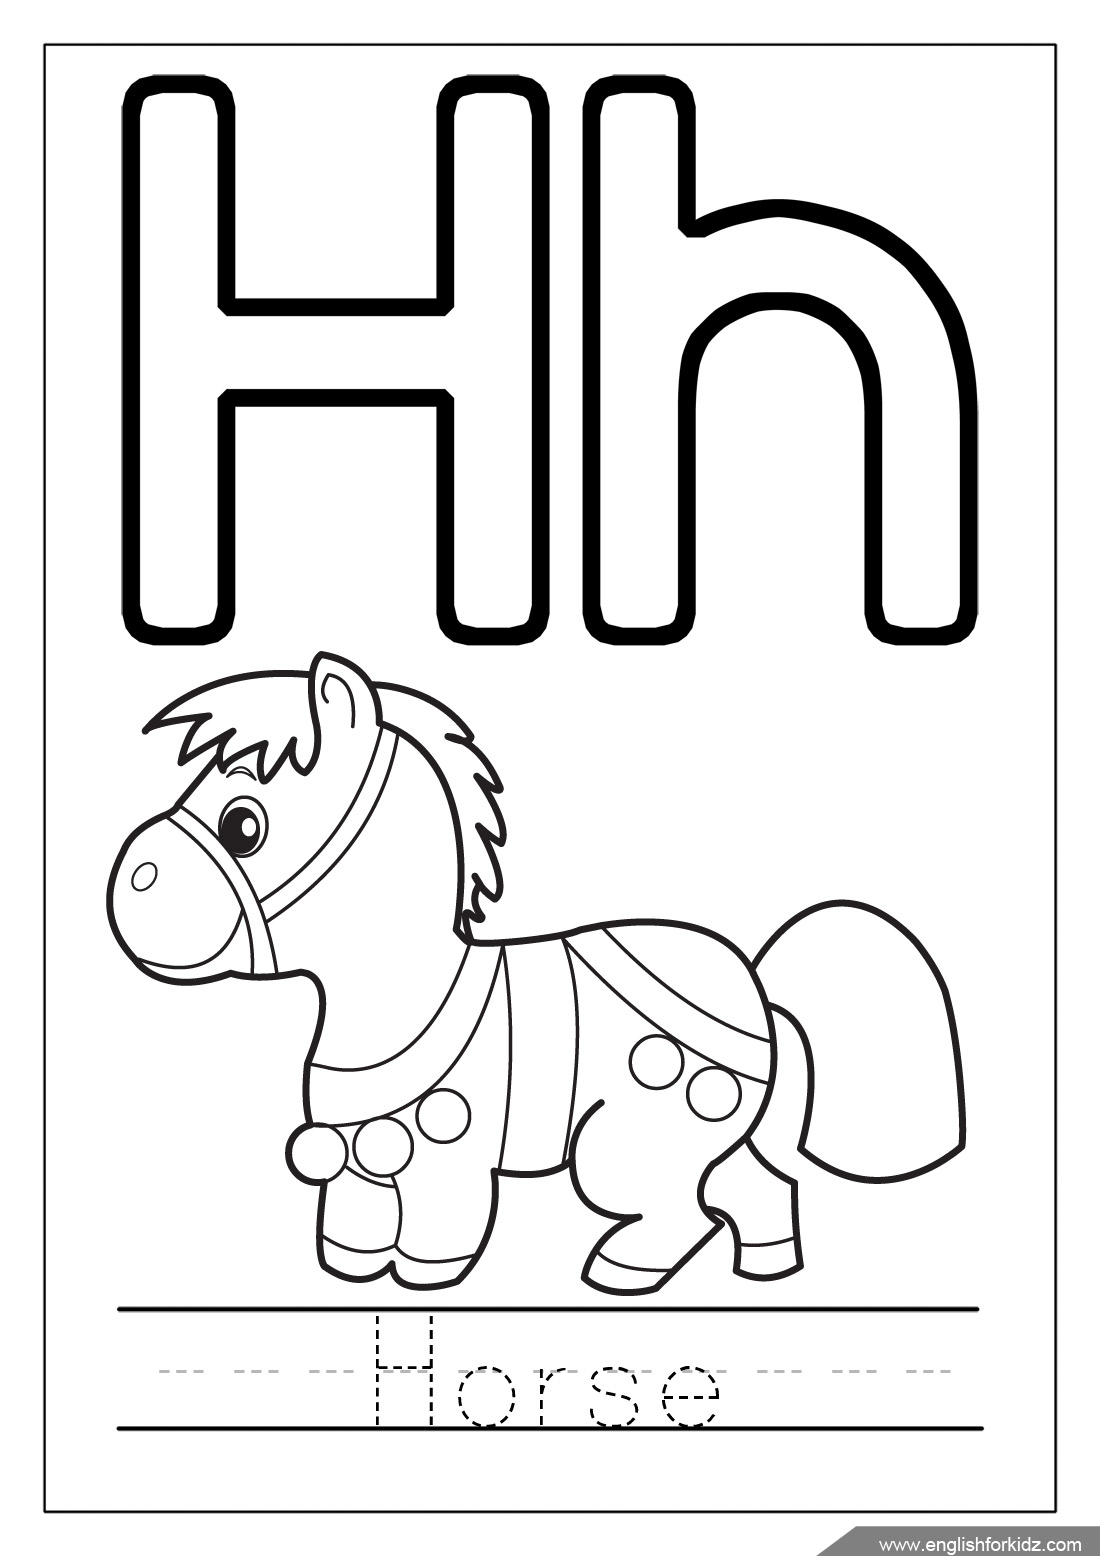 letter h coloring pages home sketch coloring page